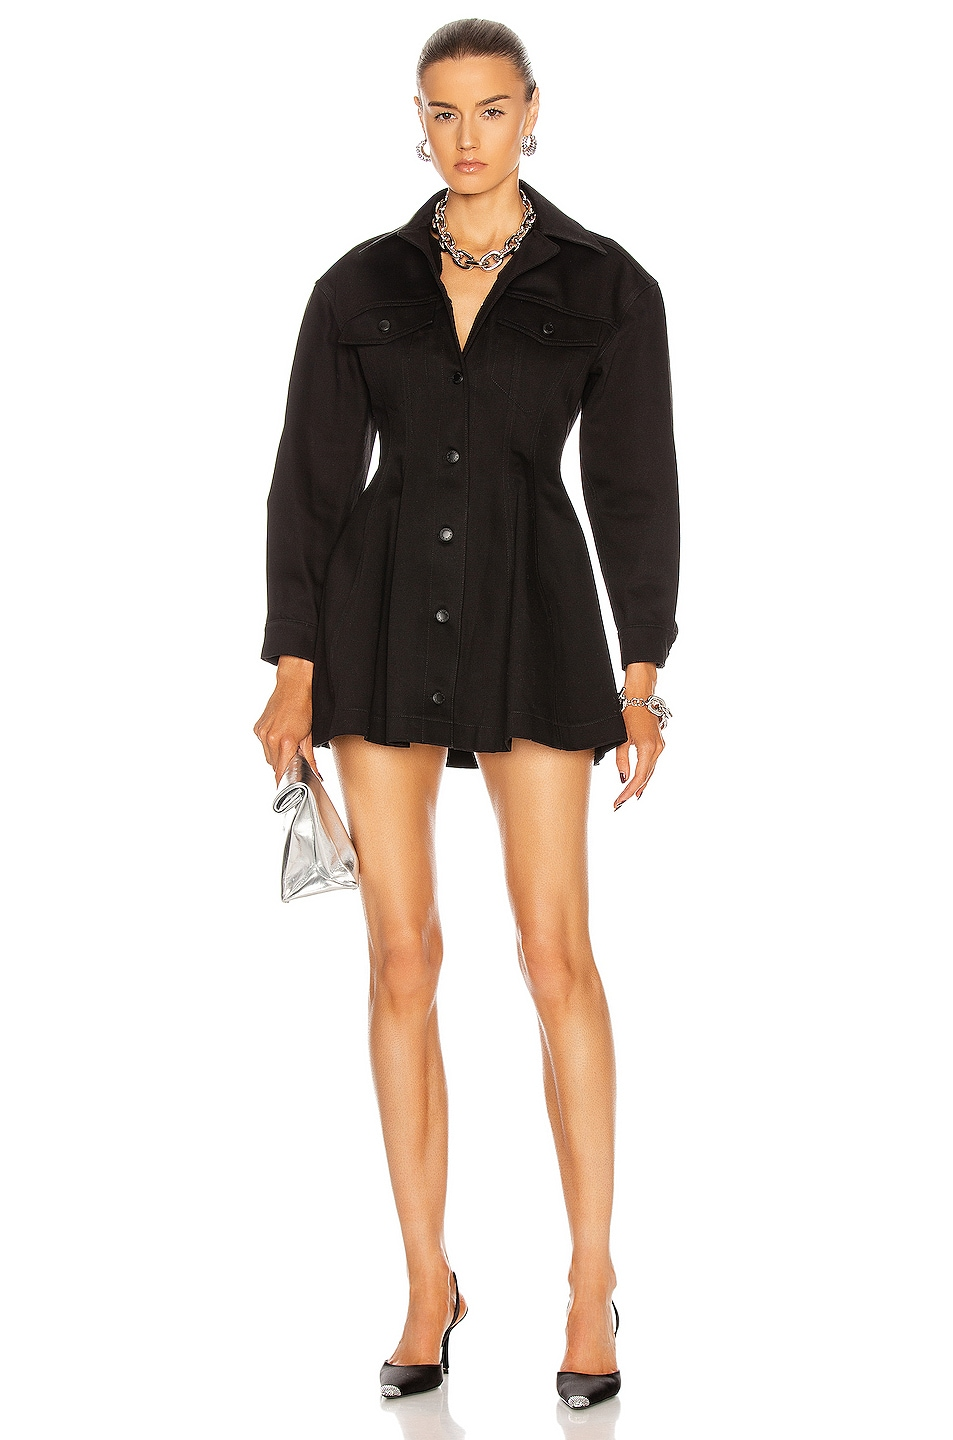 Image 1 of T by Alexander Wang Fit and Flare Jacket Mini Dress in Black